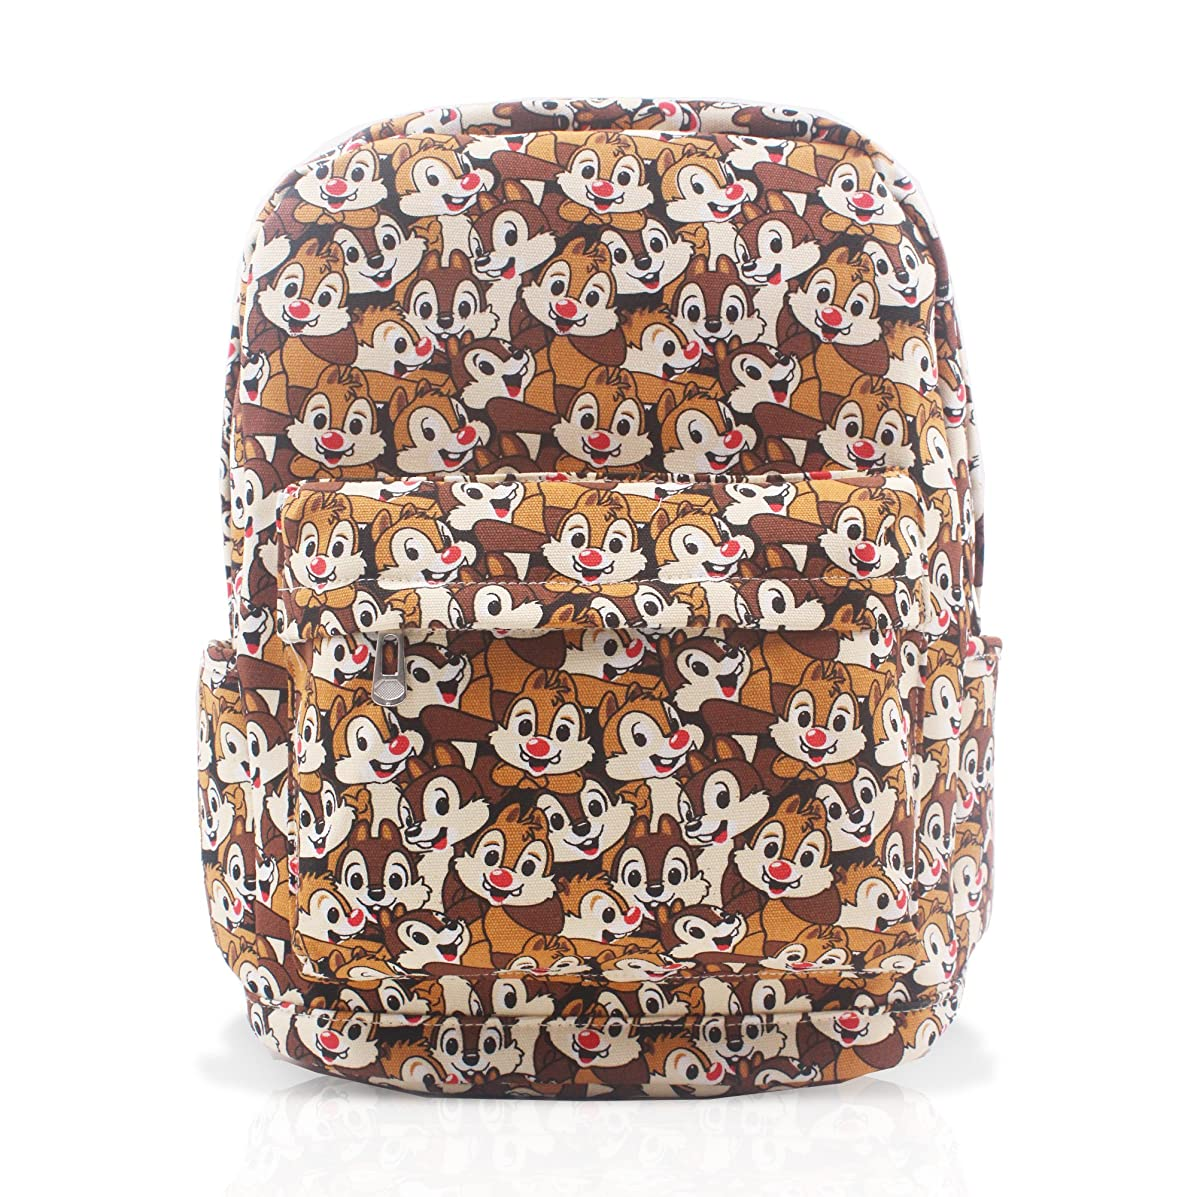 FINEX Chip and Dale Brown Canvas Cute Cartoon Casual Backpack with 15 inch Laptop Storage Compartment for College Daypack Travel Snack Sport Bag Gift